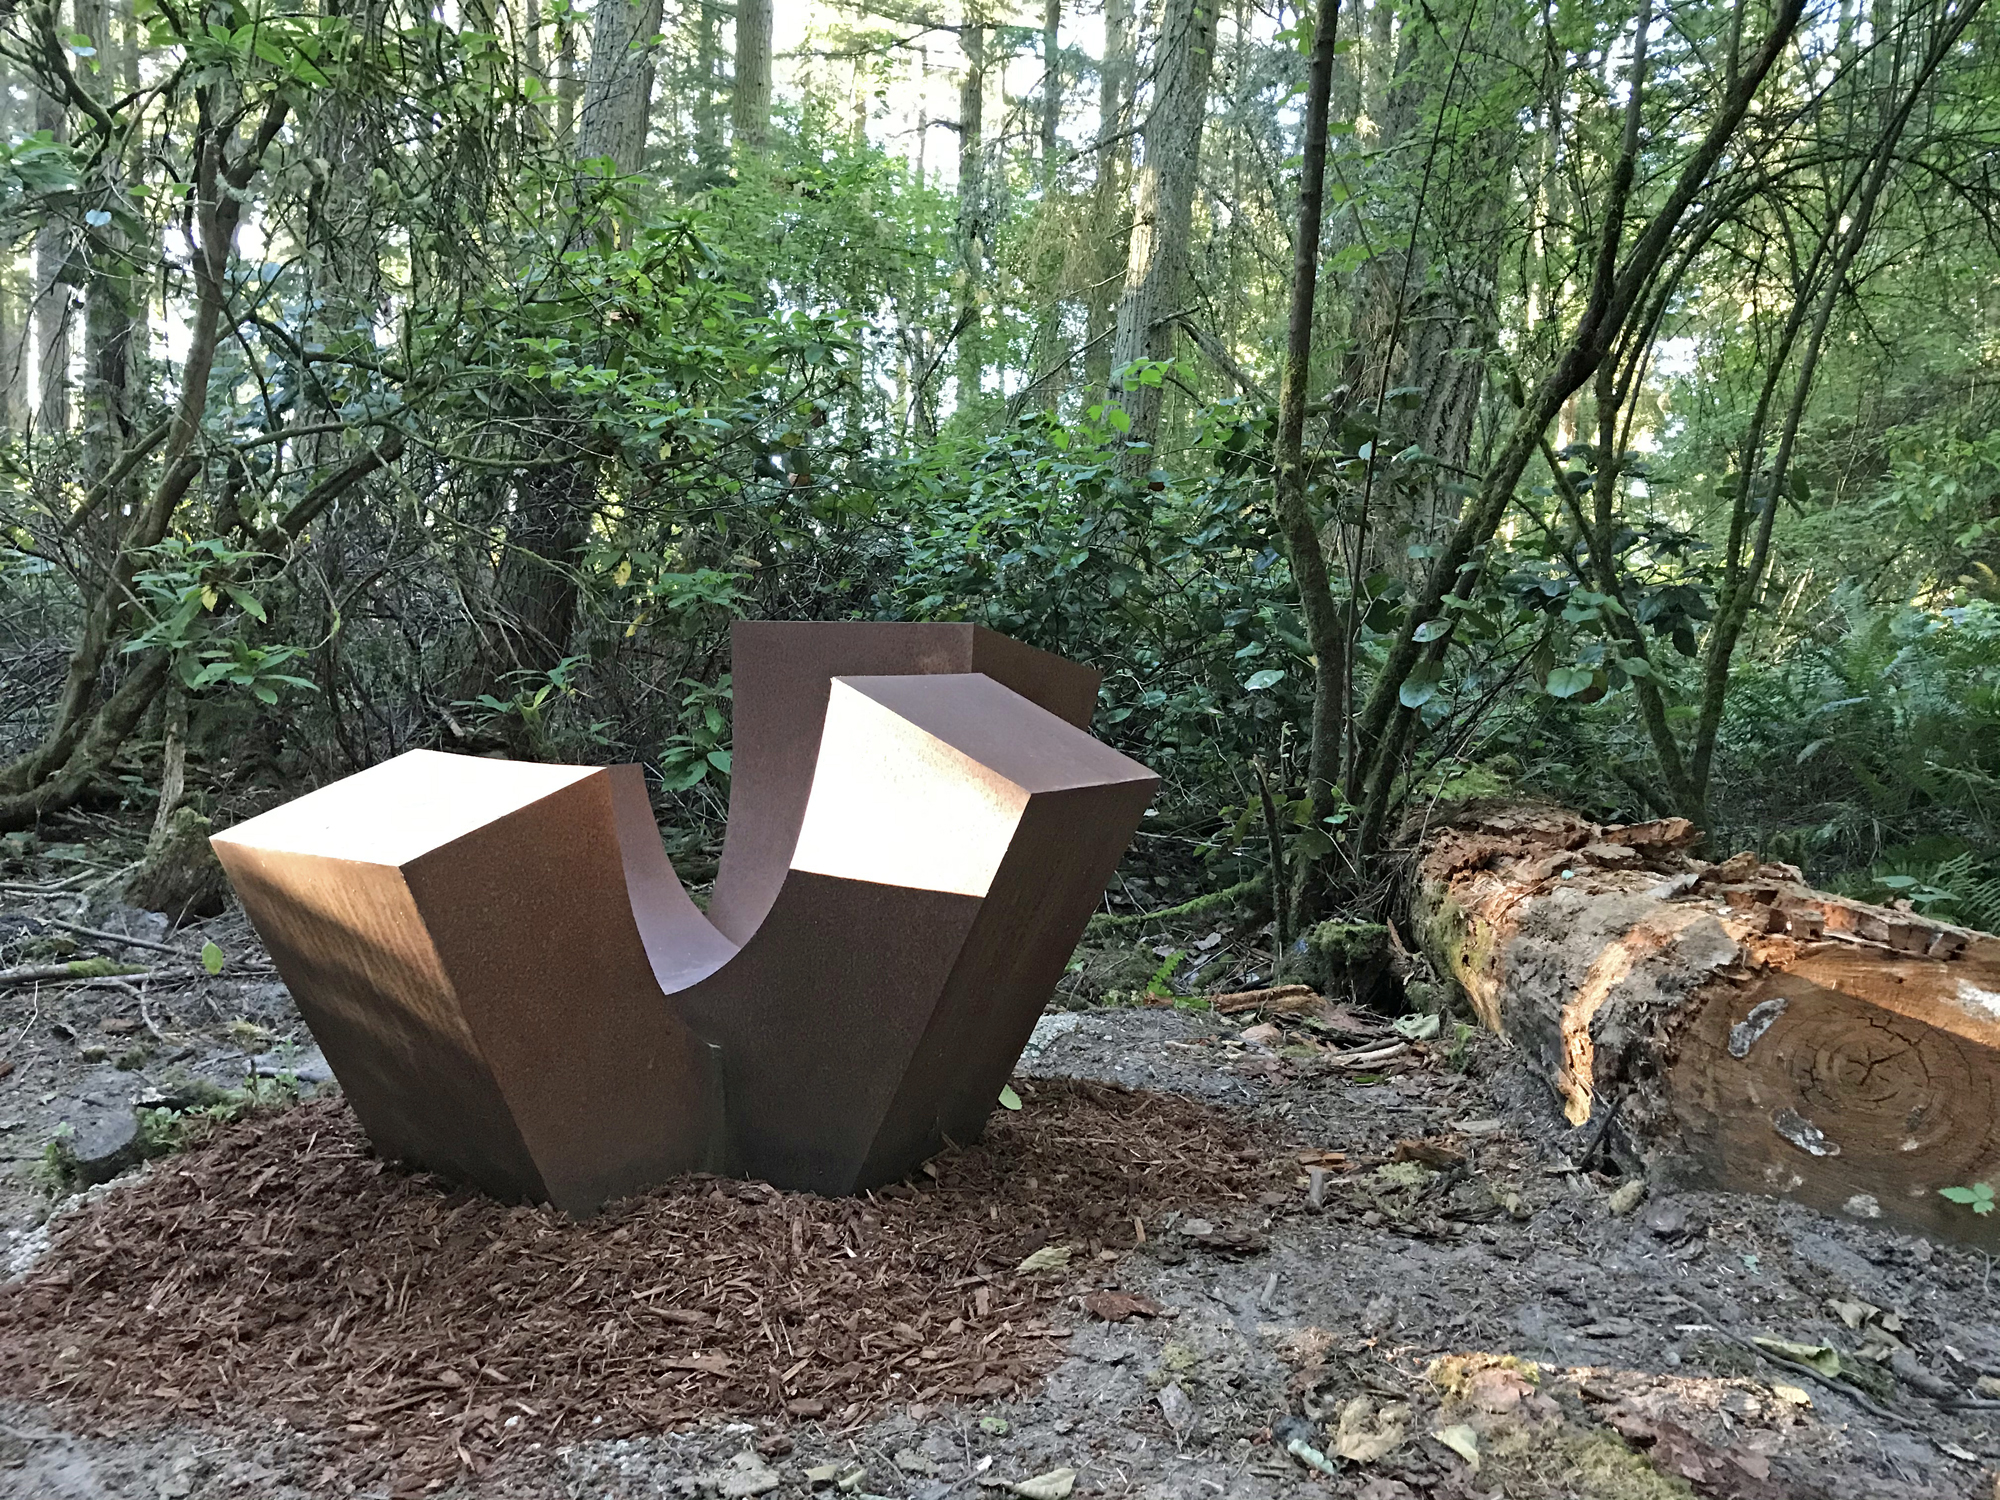 Sculptor Jan Hoy 4-Up at Price Sculpture Forest sculpture park Coupeville Whidbey Island